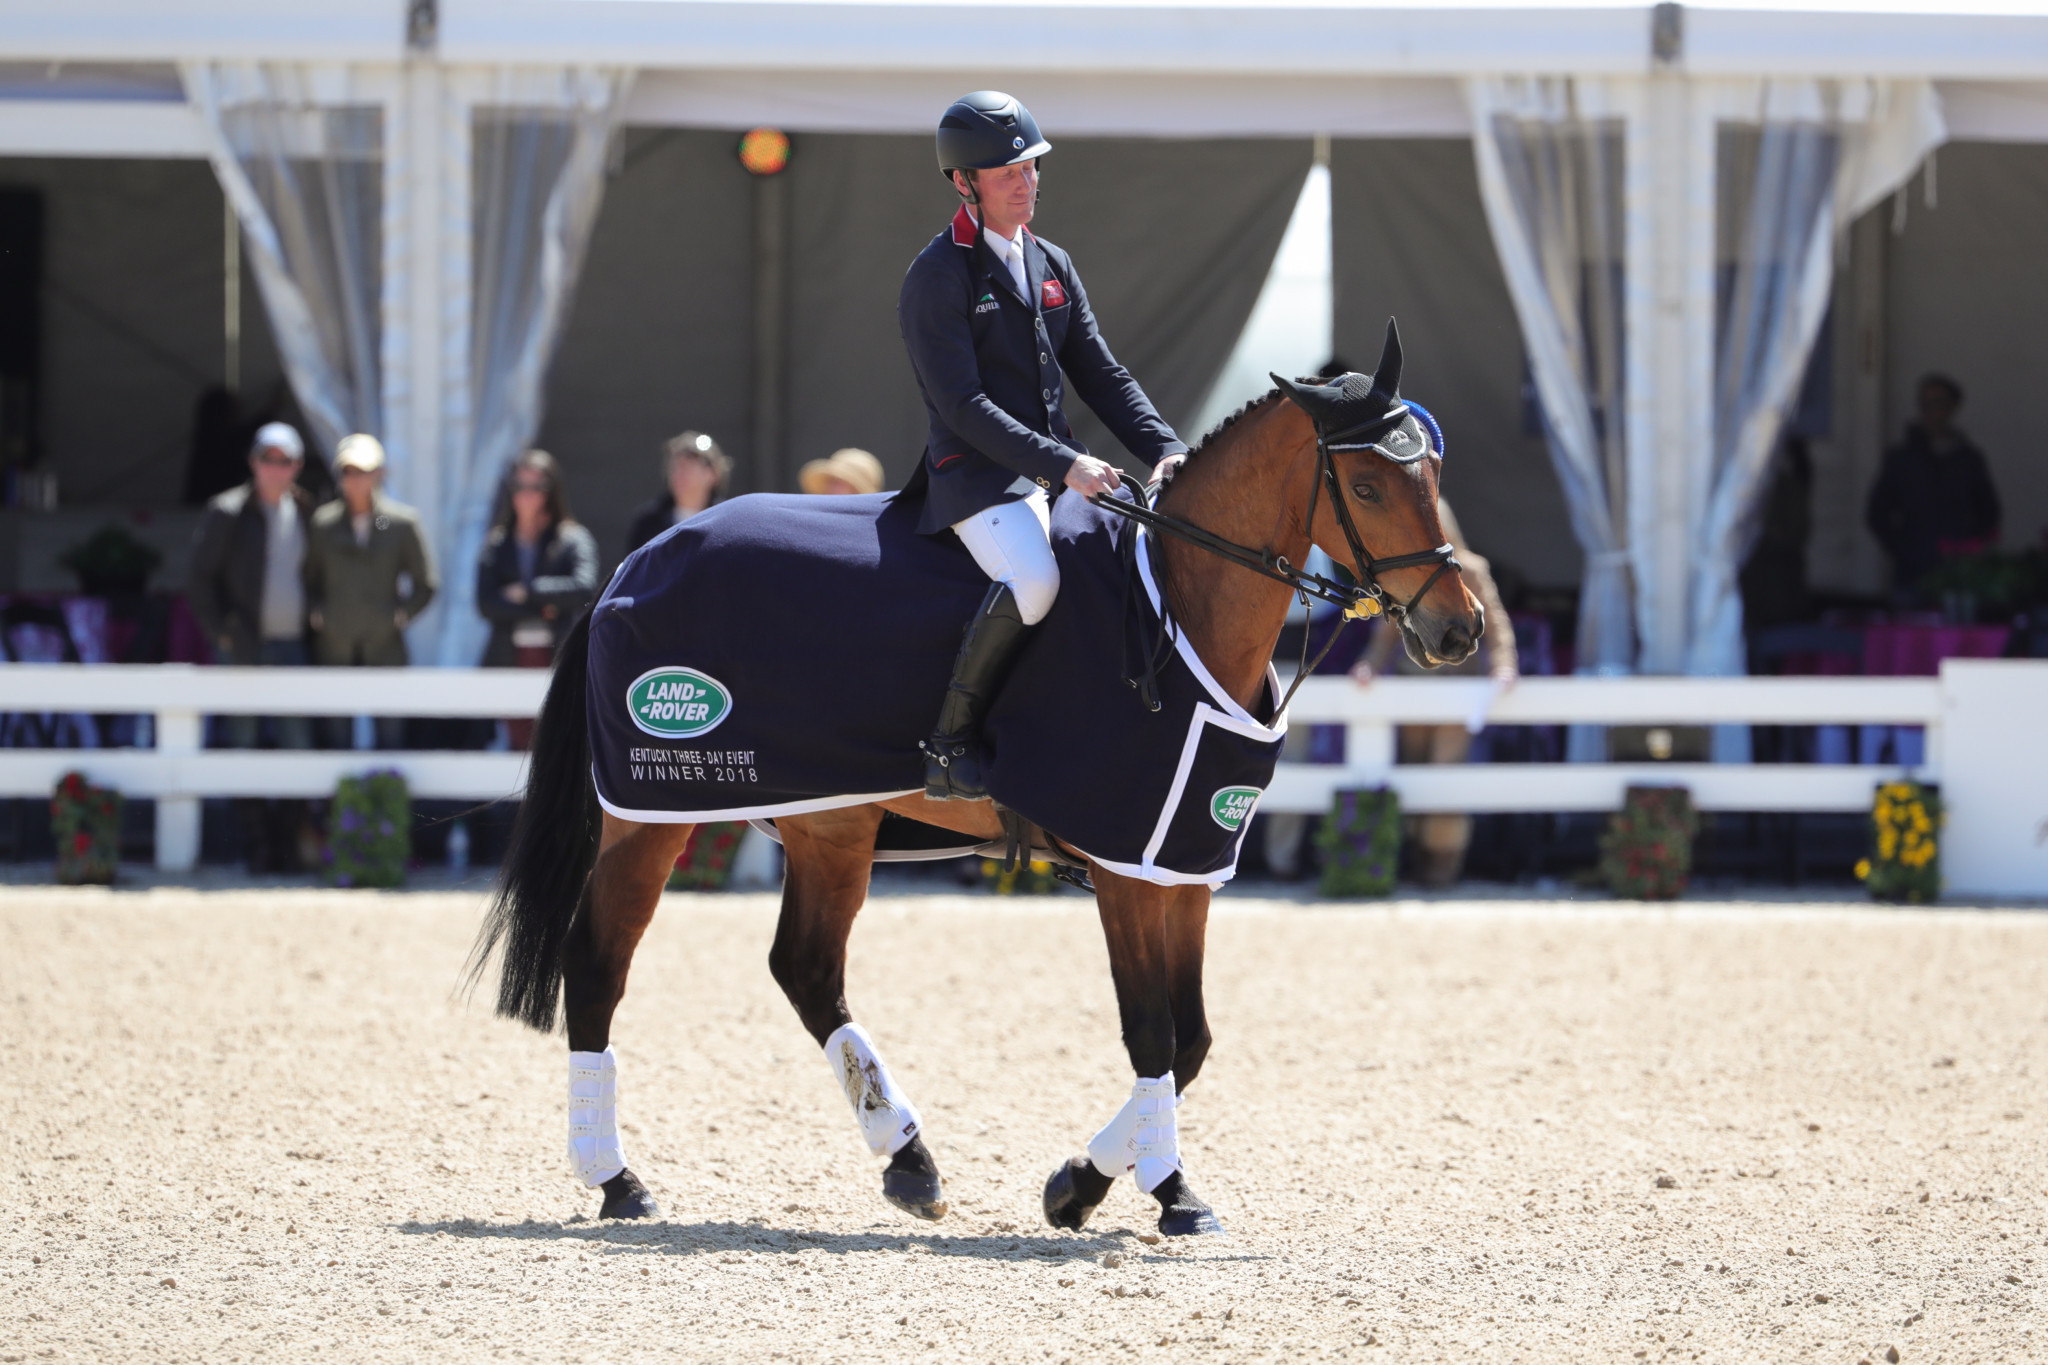 British Horse Society to raise concerns over use of whip by Townend with FEI